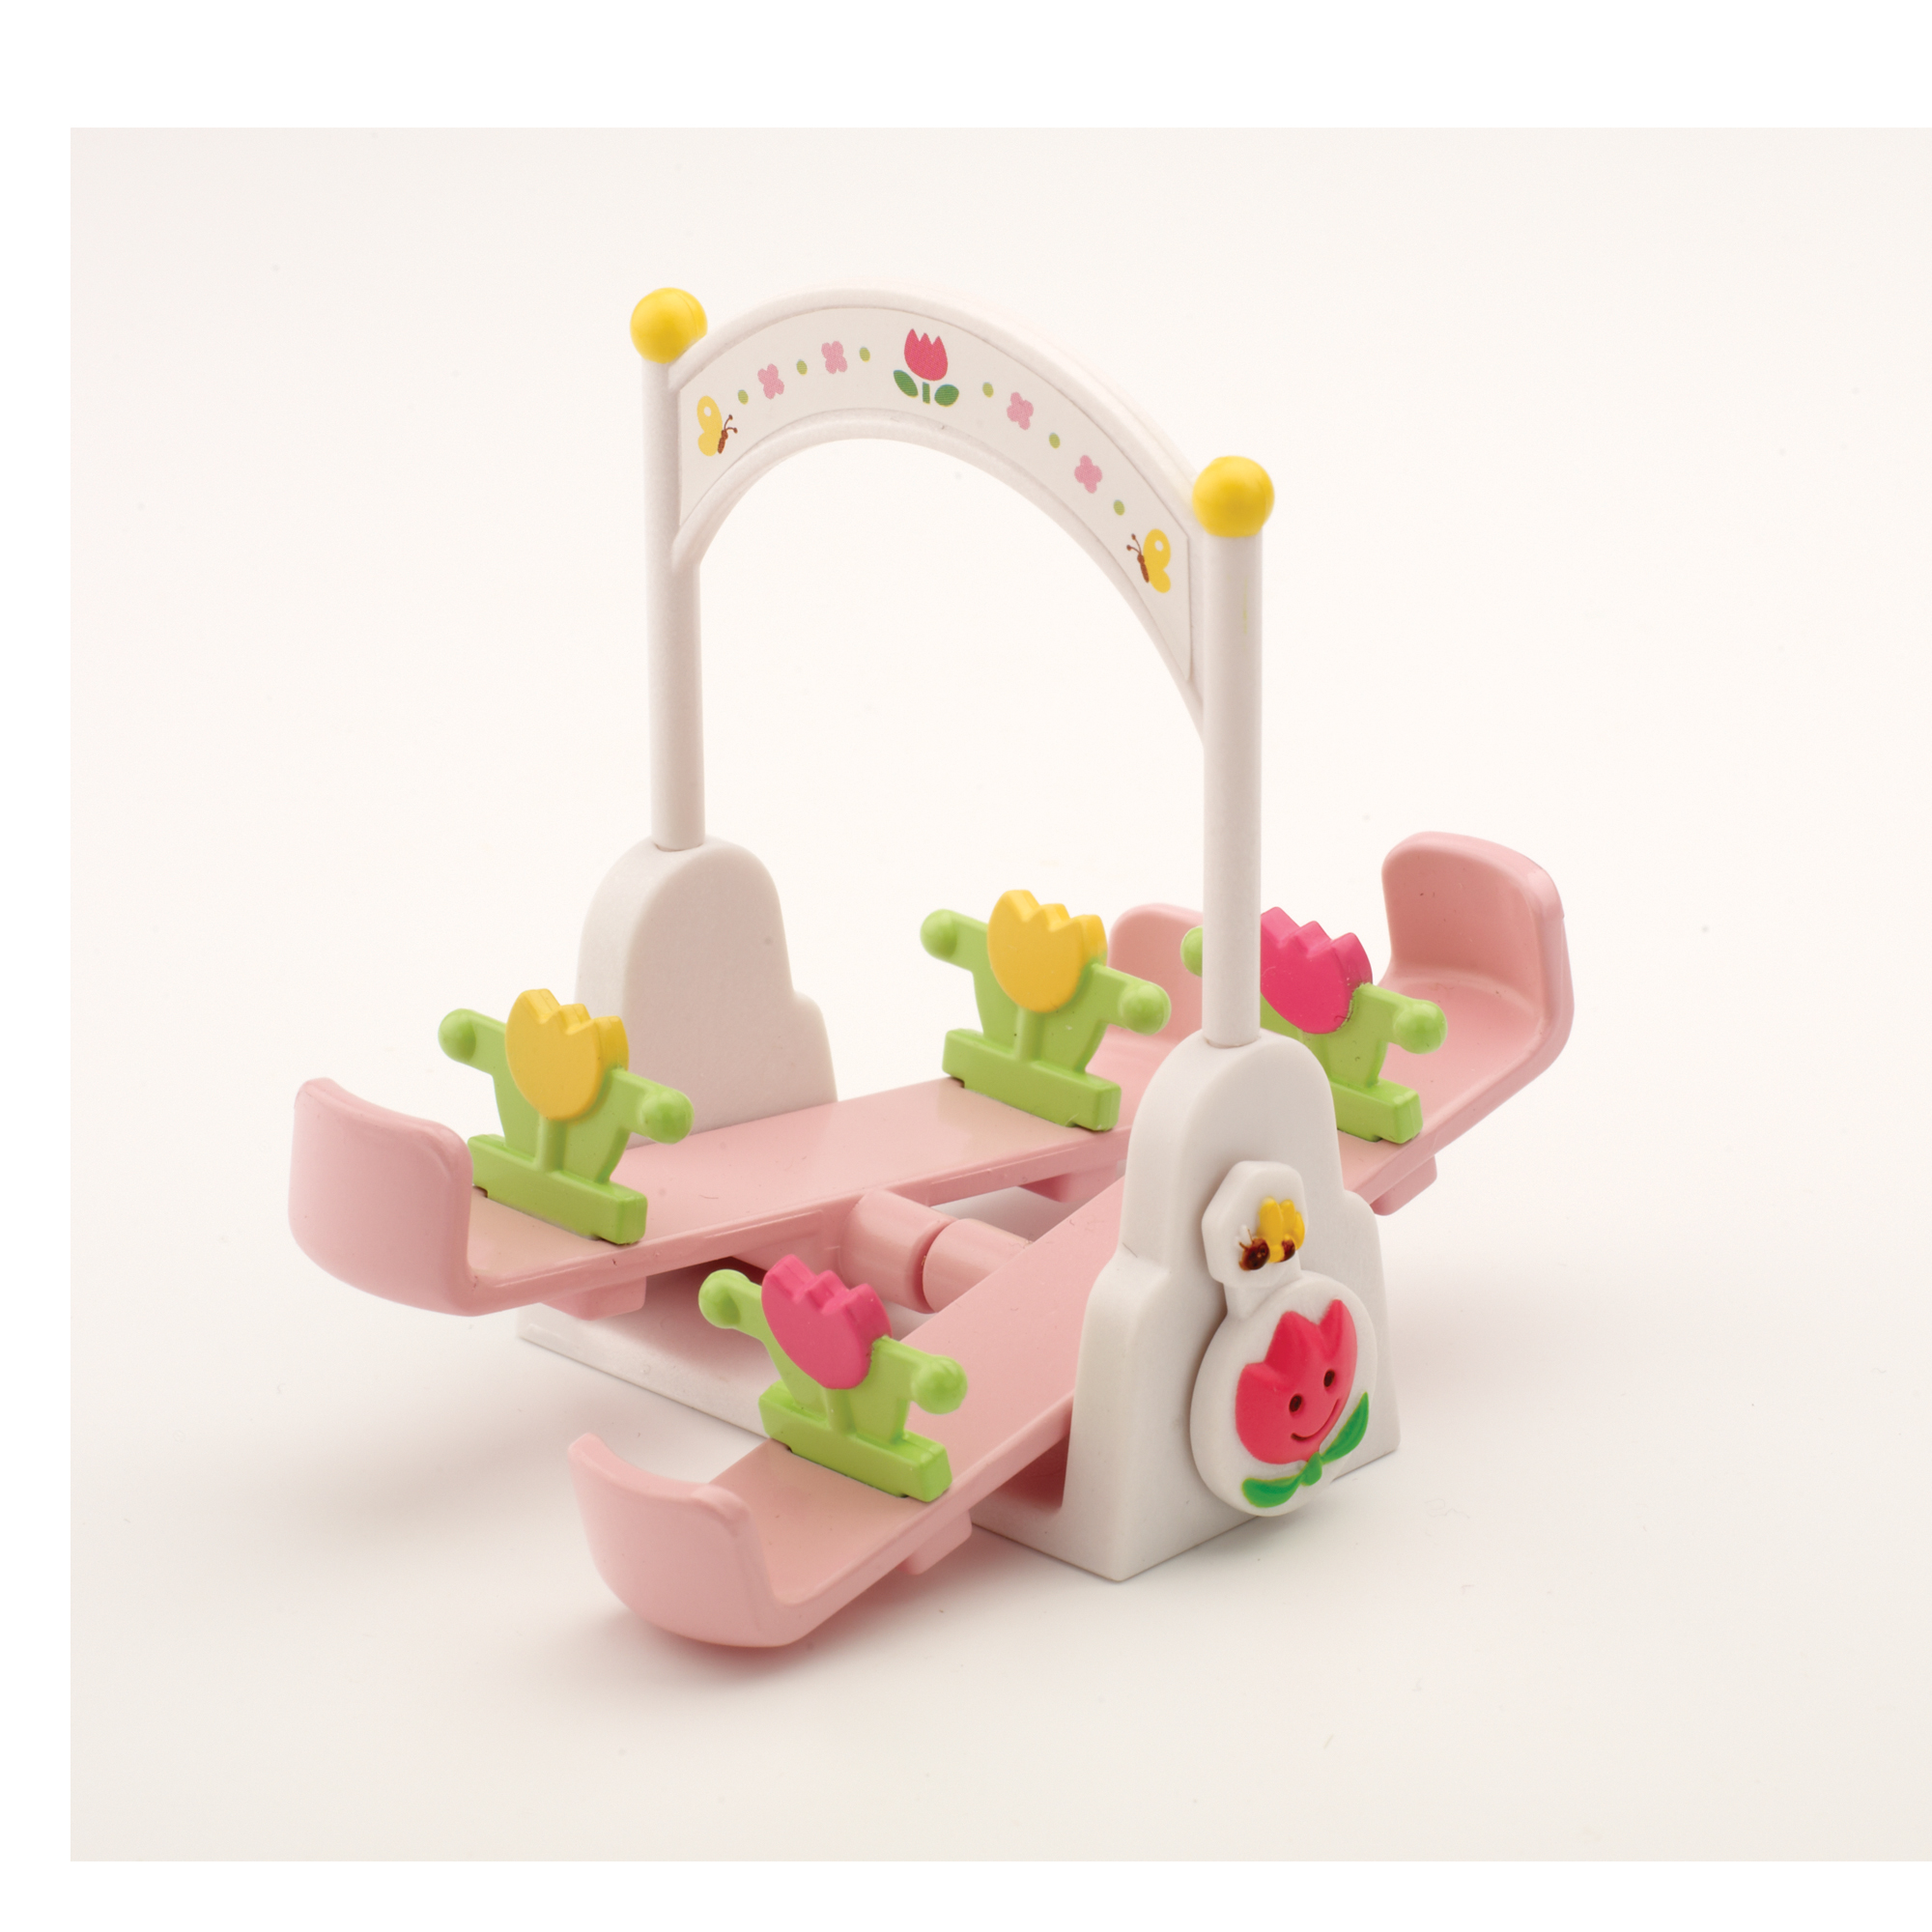 Picture of Sylvanian Families Baby Double see-saw